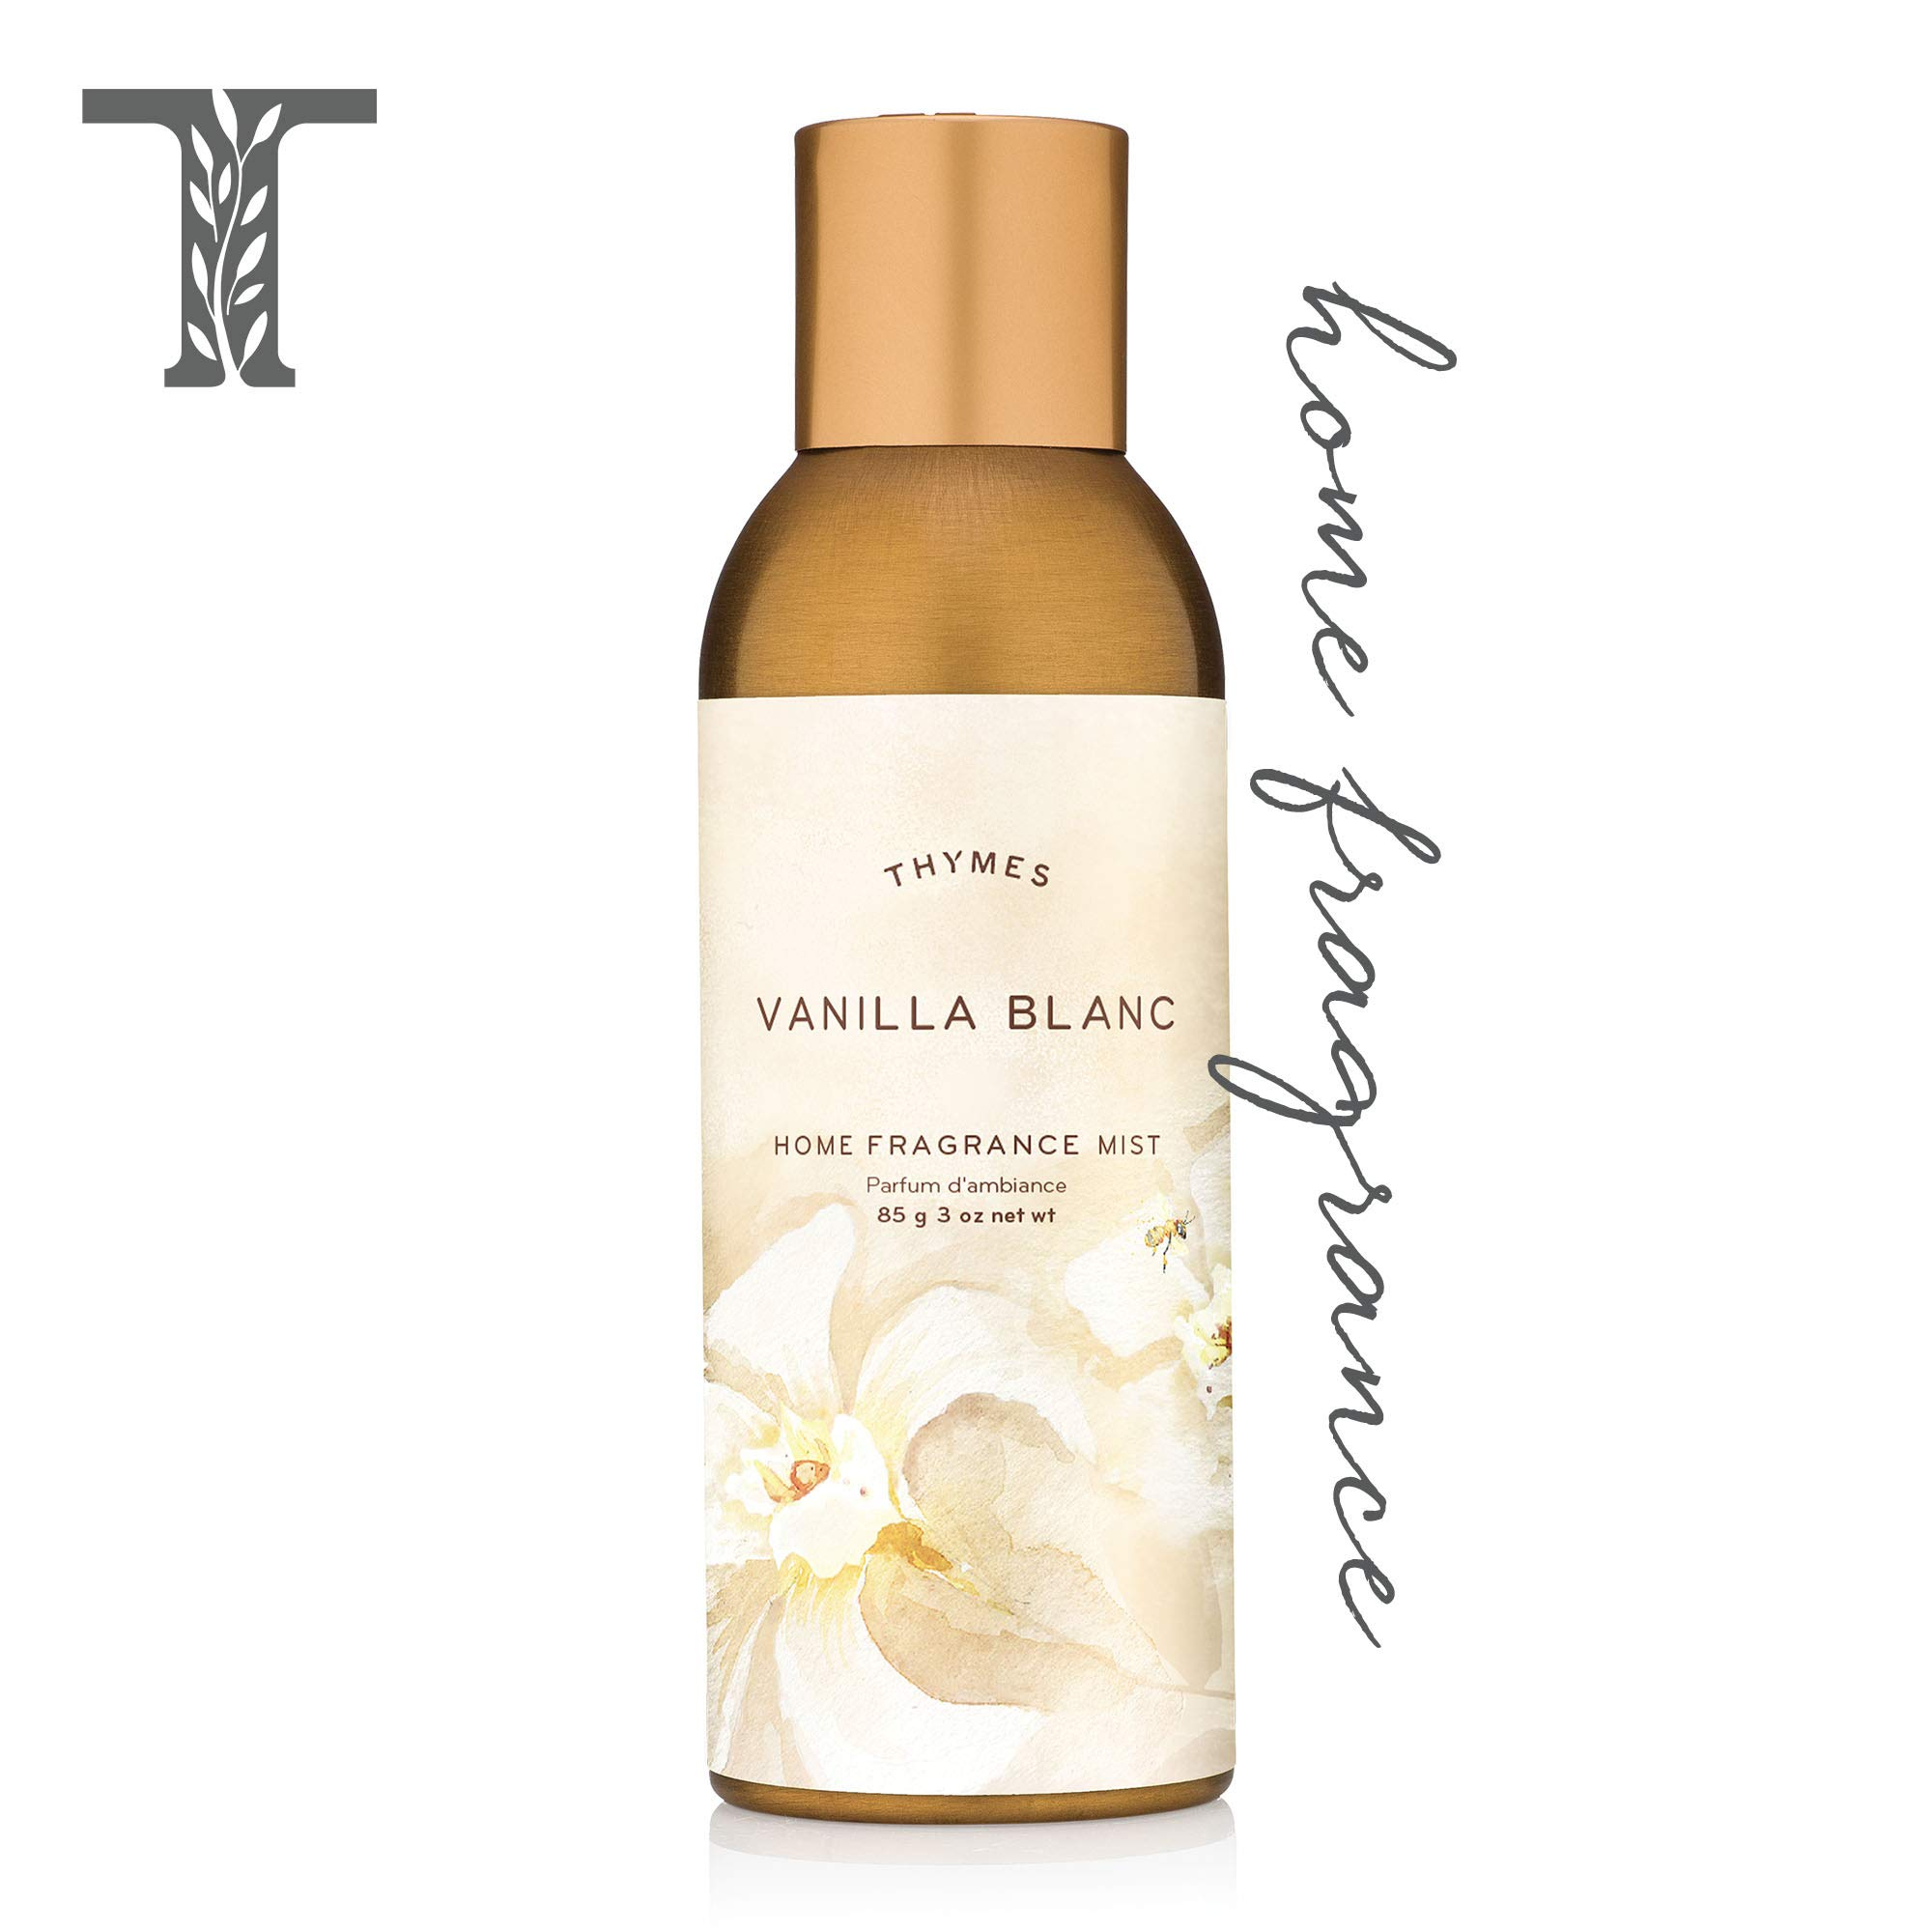 Thymes Vanilla Blanc Home Fragrance Mist, 3.0 oz by Thymes